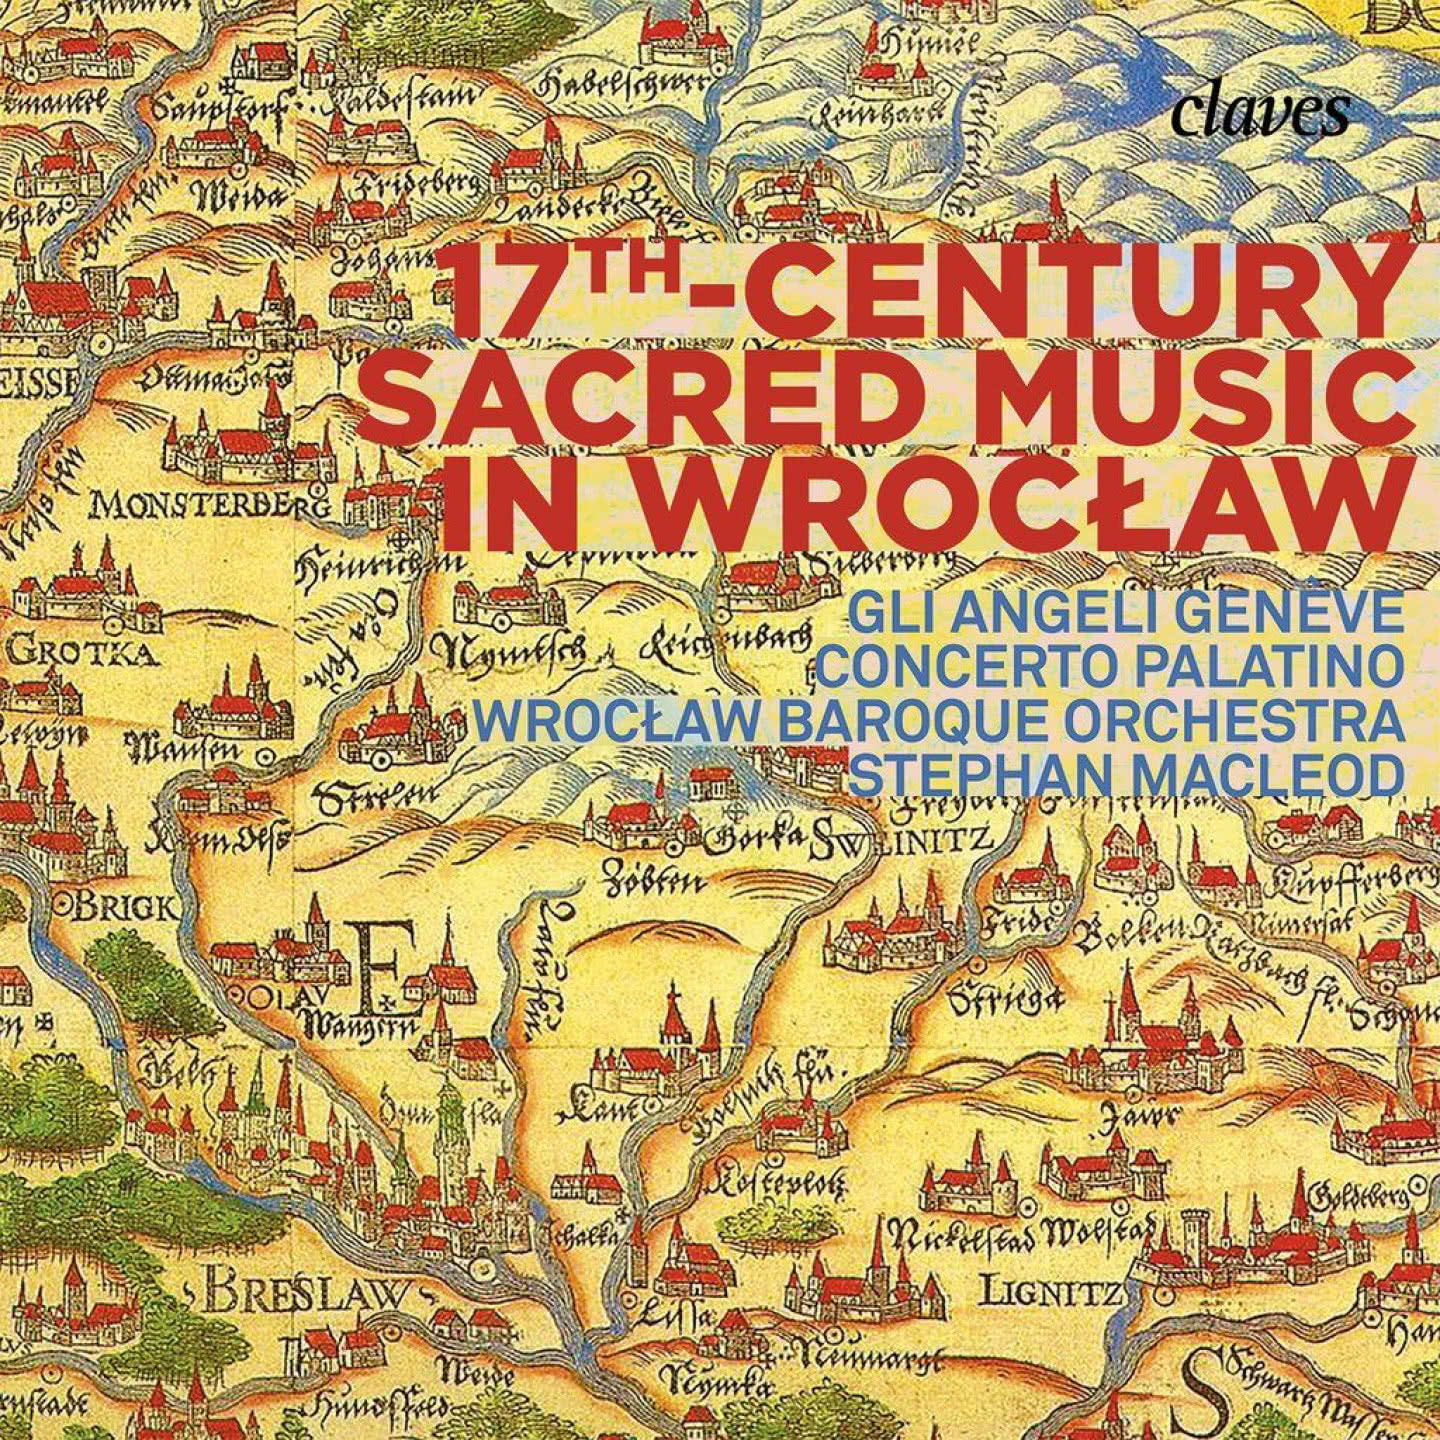 17th-Century Sacred Music in Wrocław